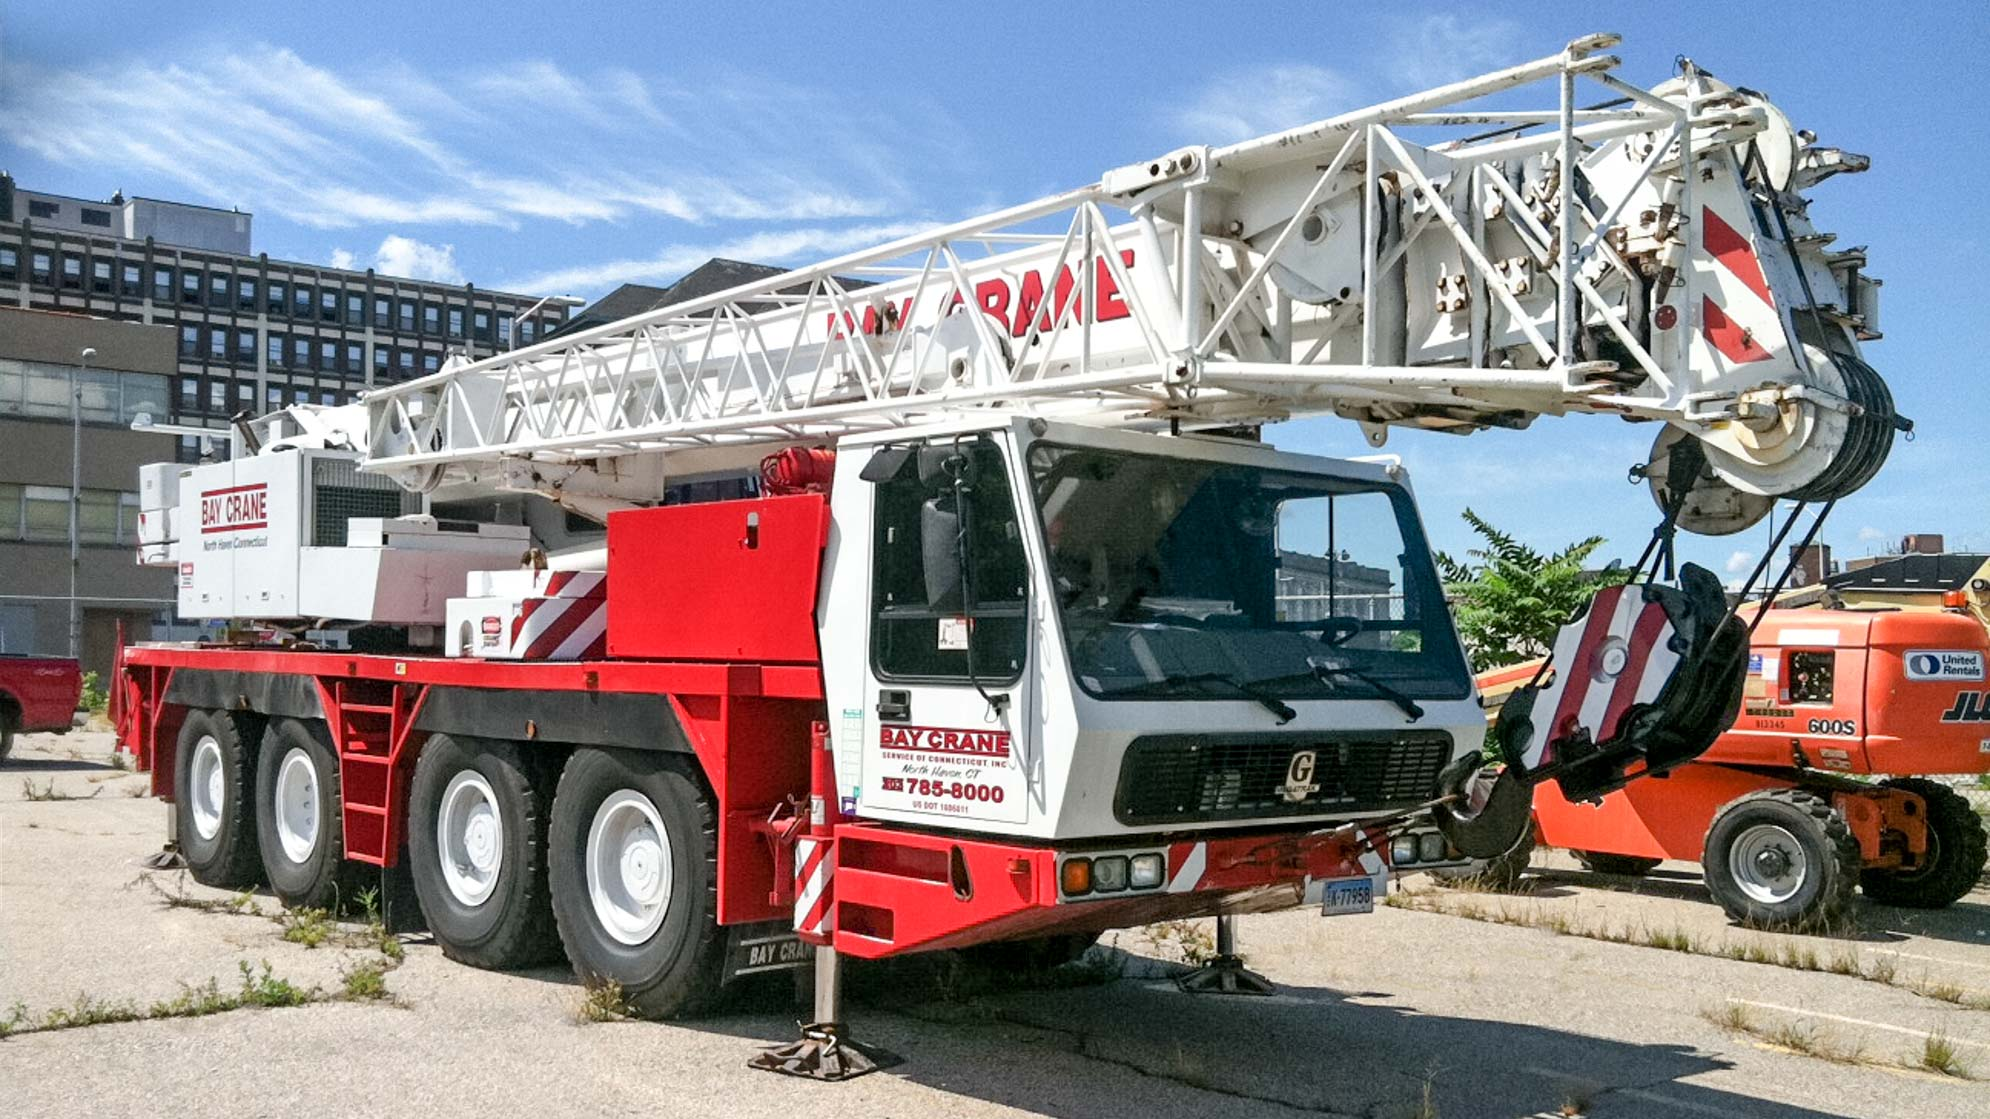 GMK 4100B all terrain crane with a hydraulic expandable